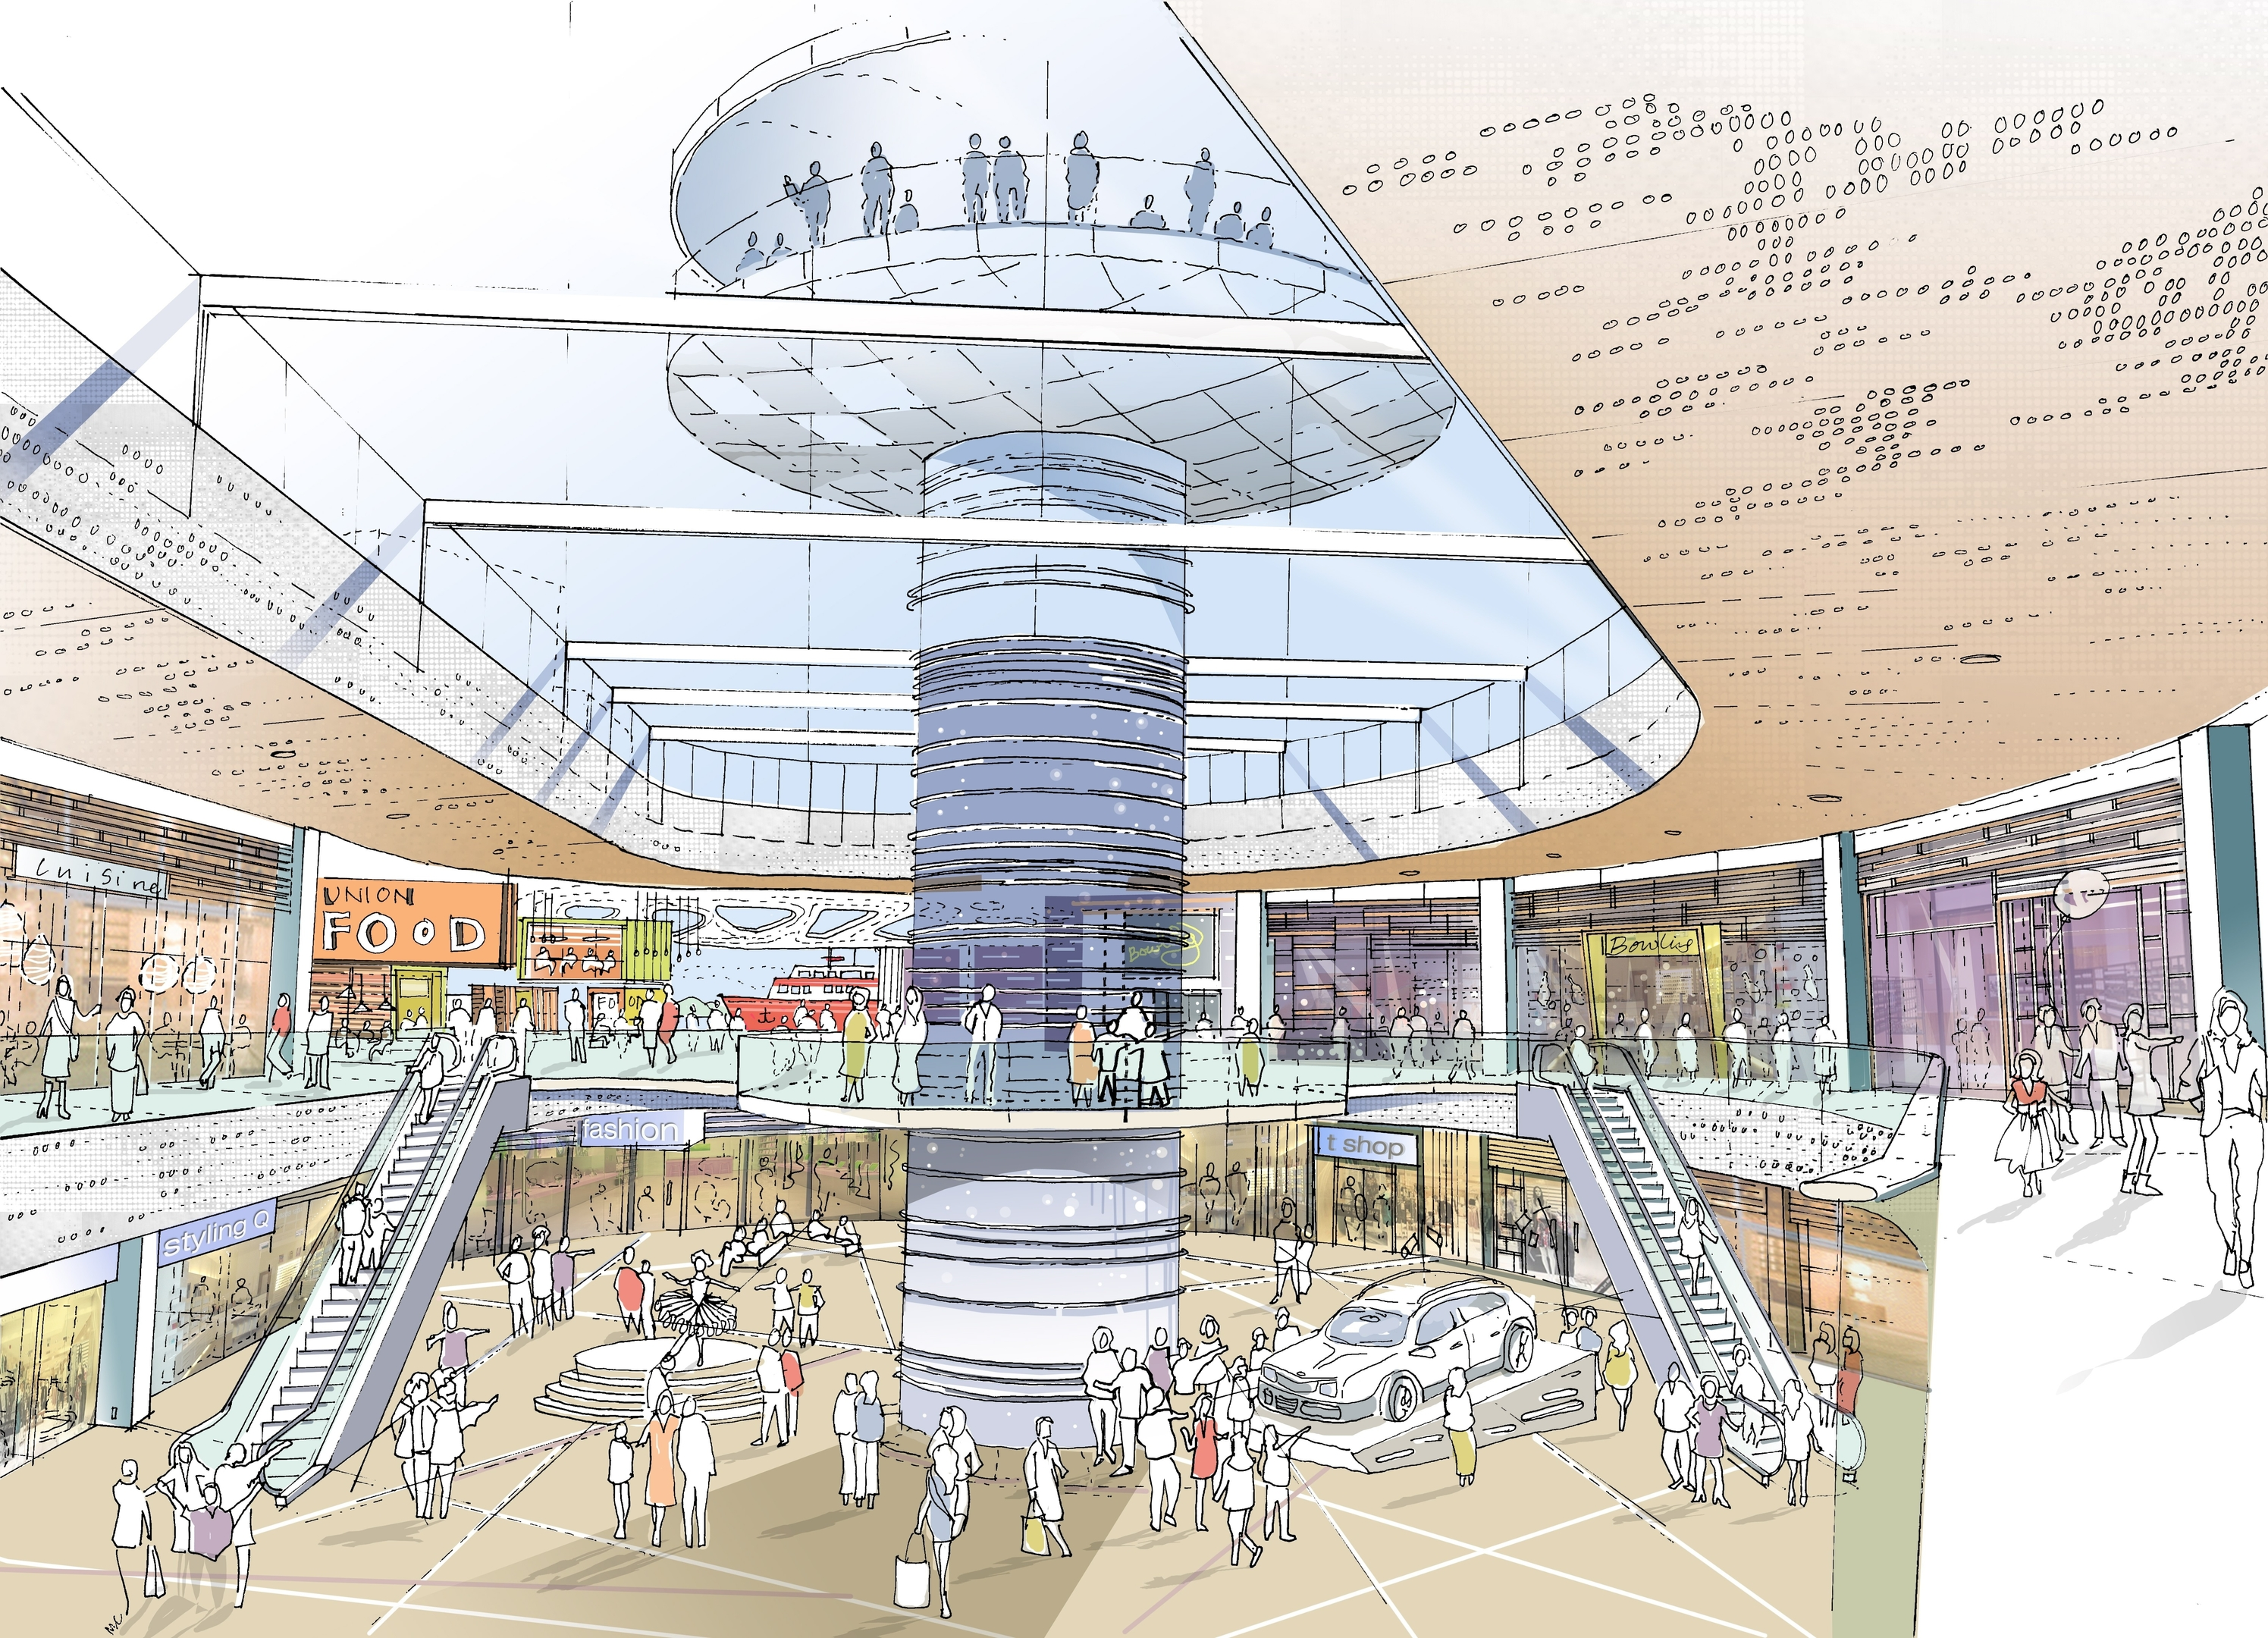 Artist impression of the planned revamp of Aberdeen's Union Square.  This image shows an observation tower